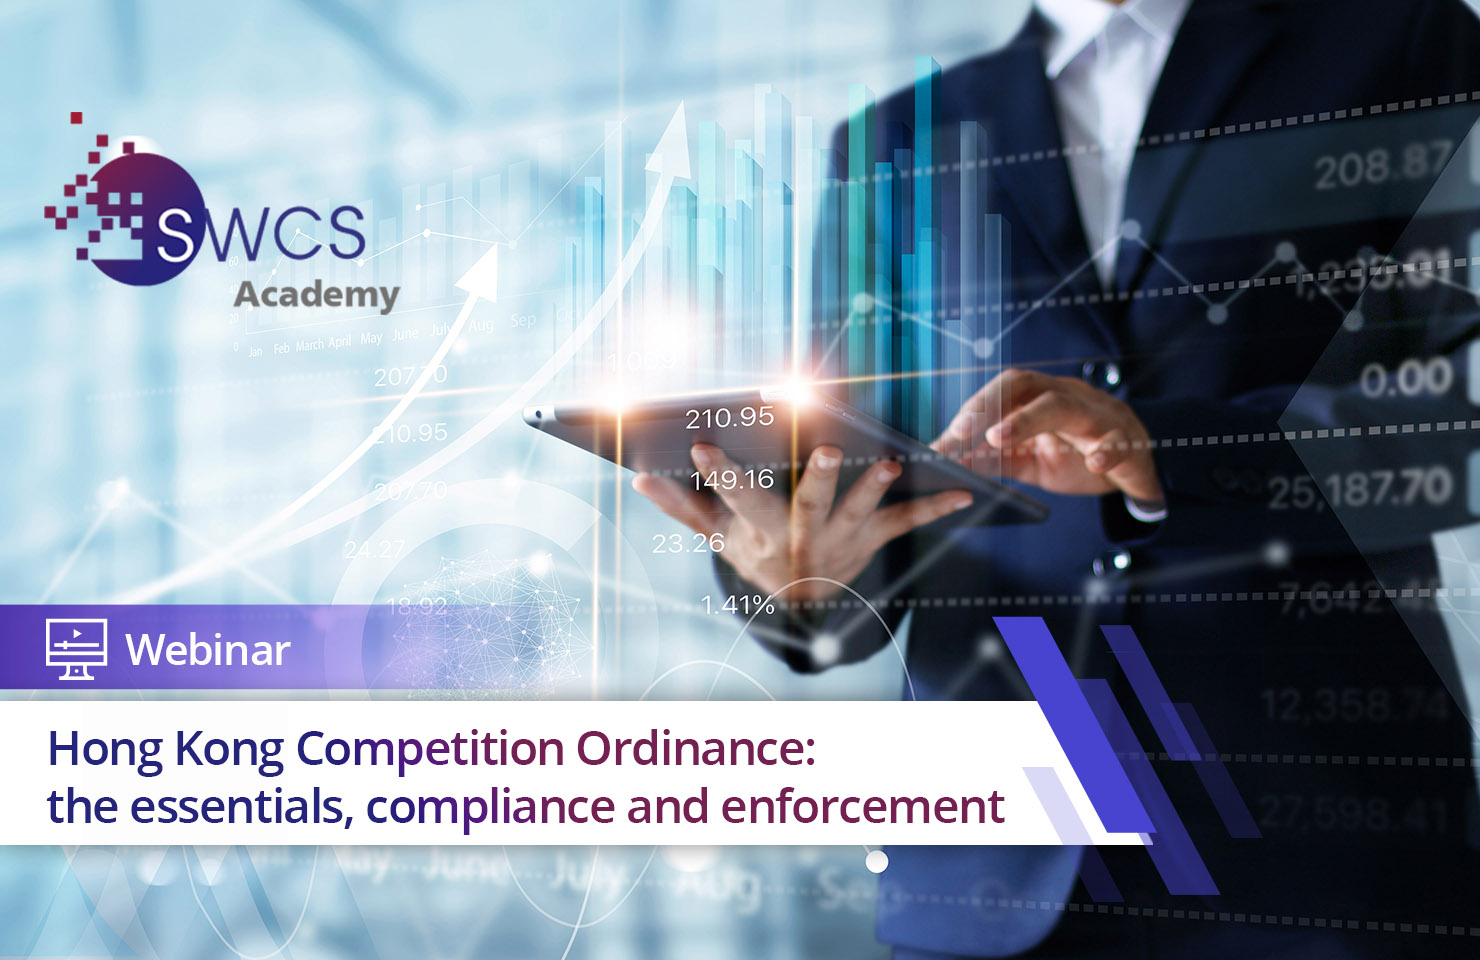 Hong Kong Competition Ordinance: the essentials, compliance and enforcement